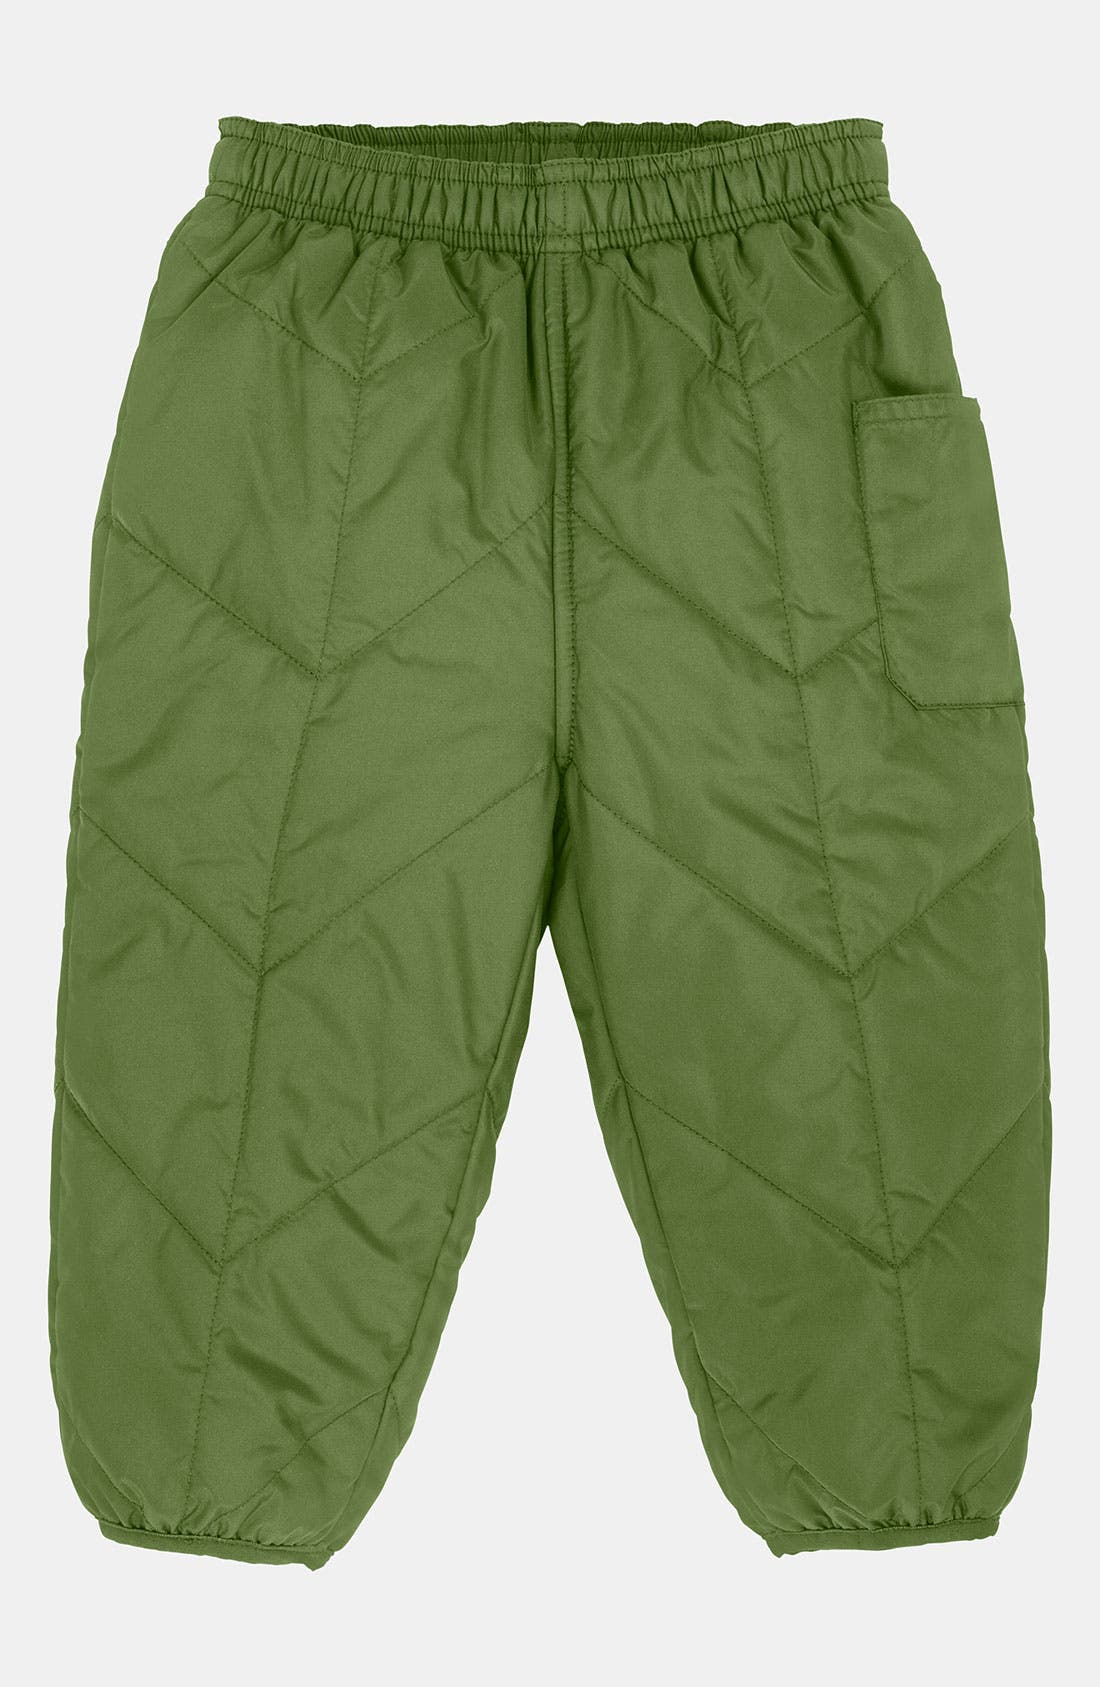 Main Image - The North Face 'Perrito' Reversible Snow Pants (Infant)